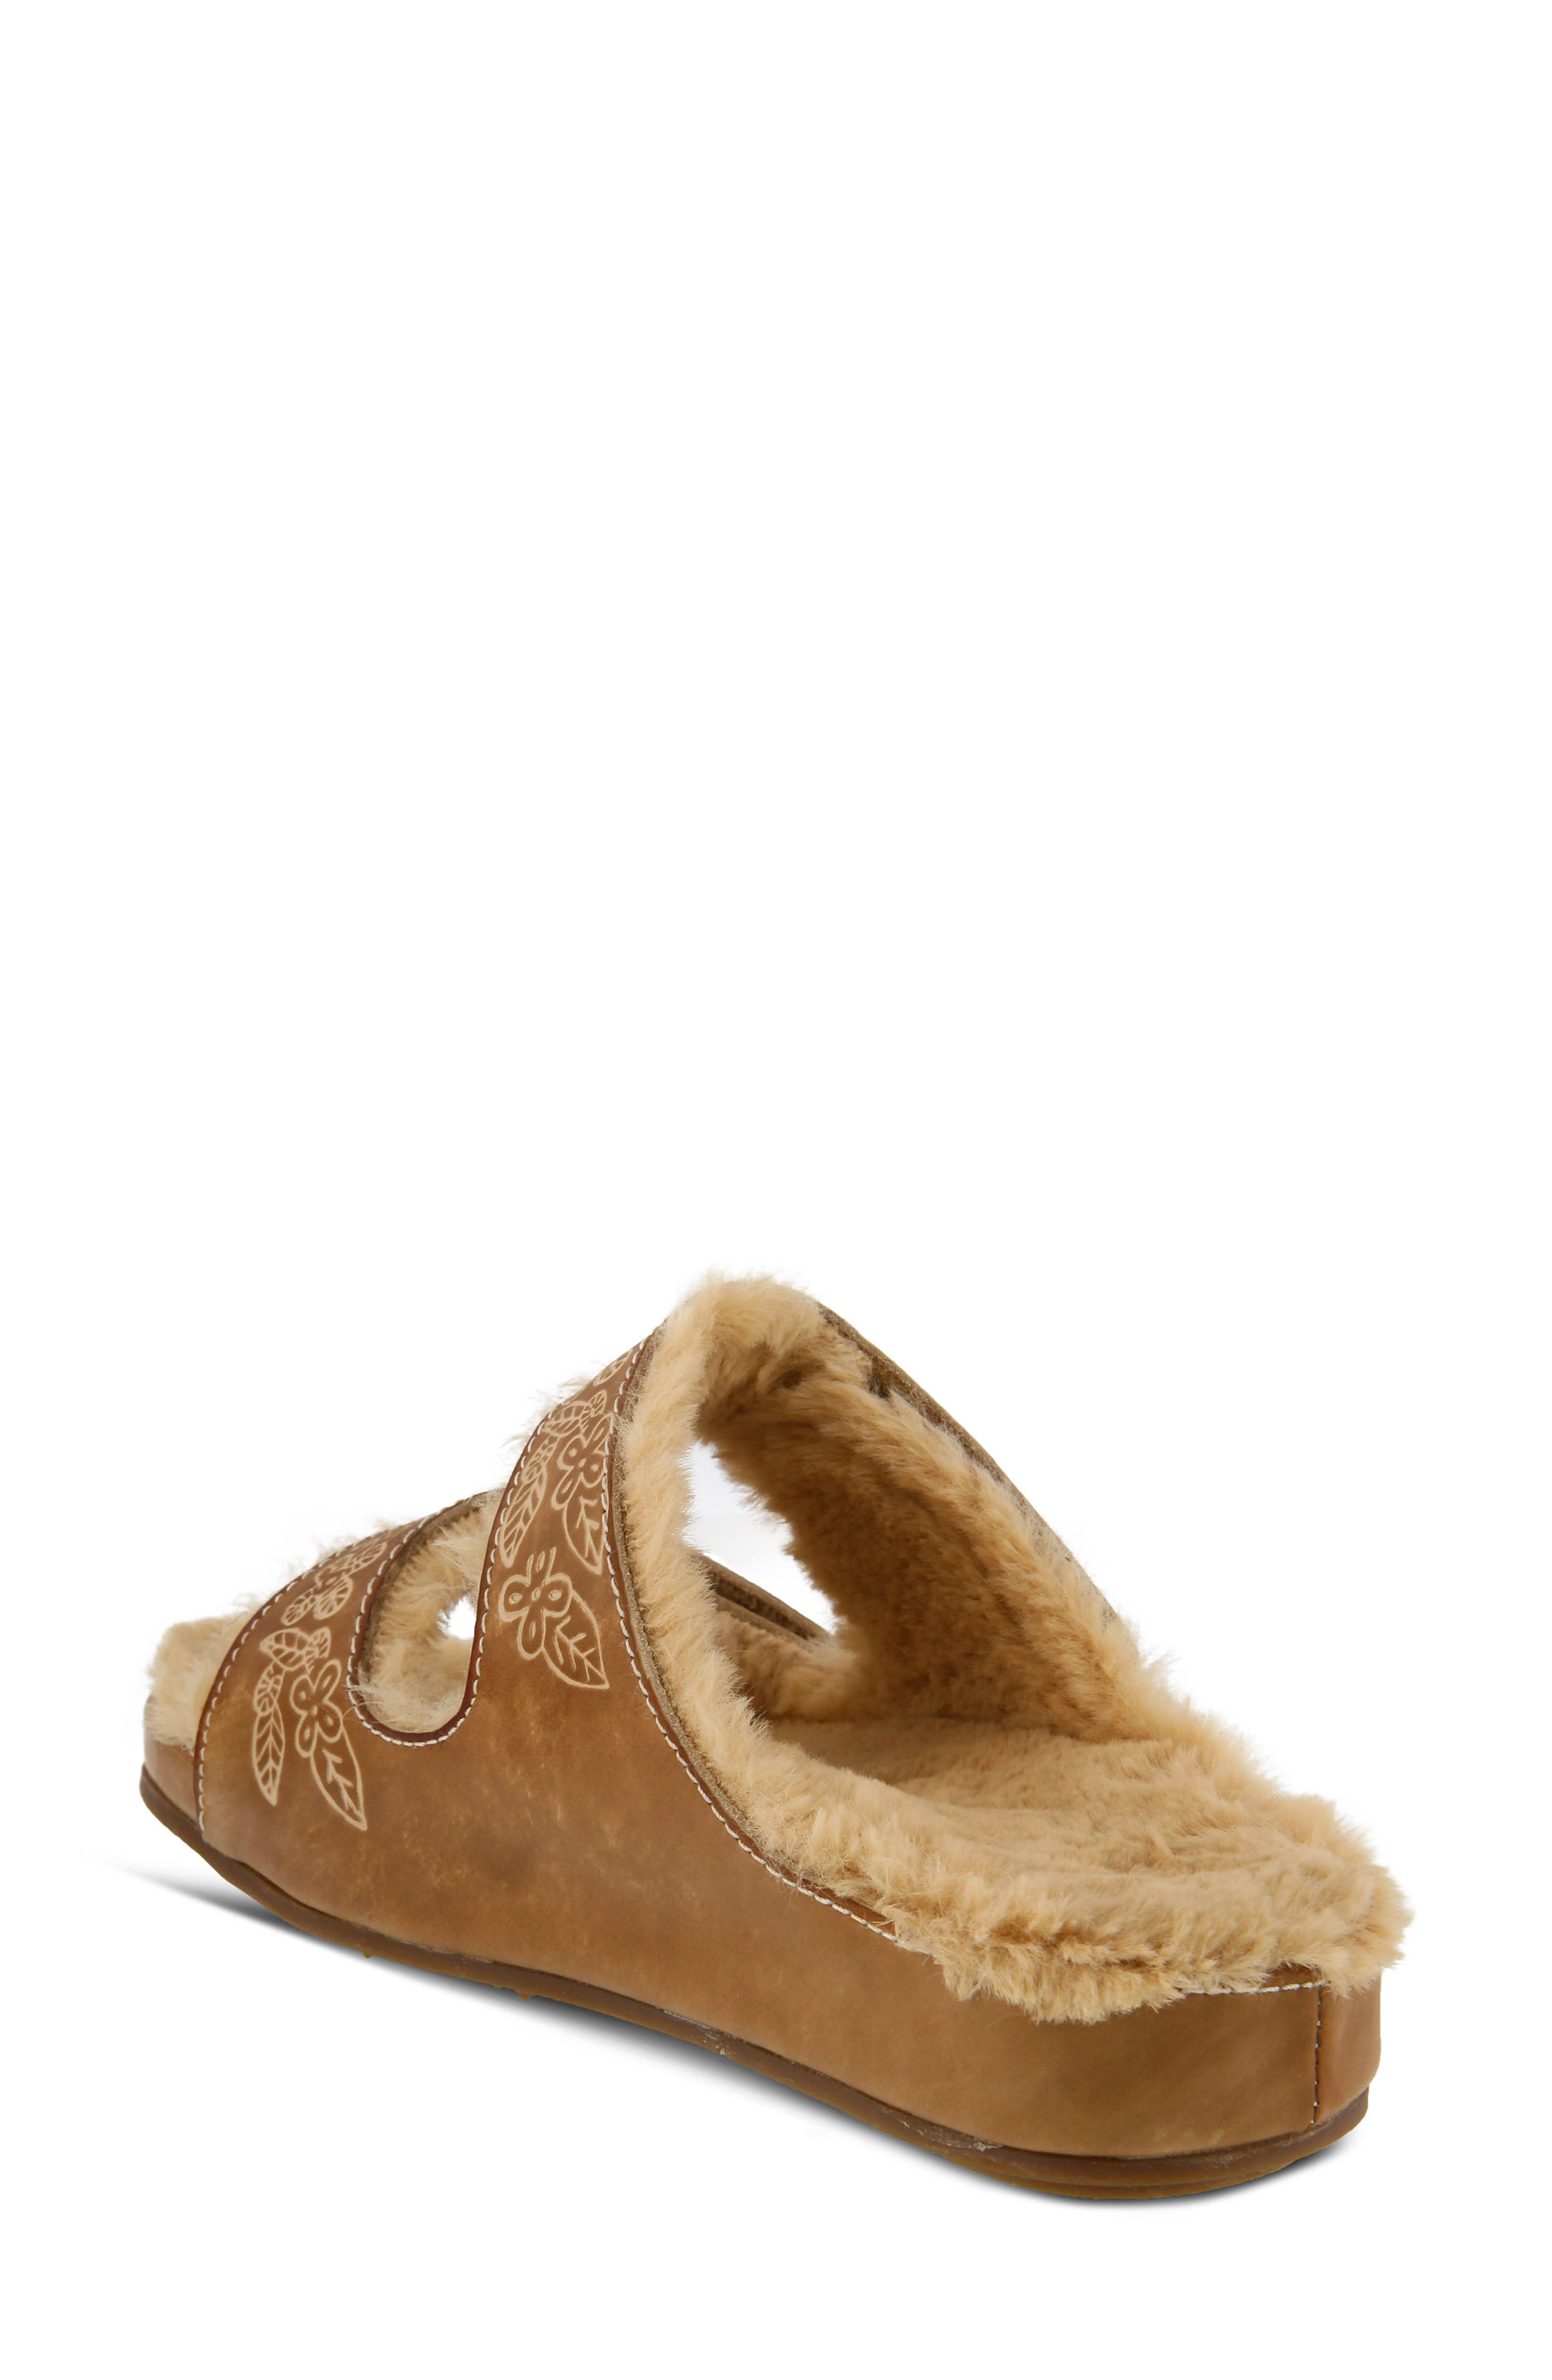 L'Artiste Furrie Sandal,                             Alternate thumbnail 2, color,                             Beige Leather